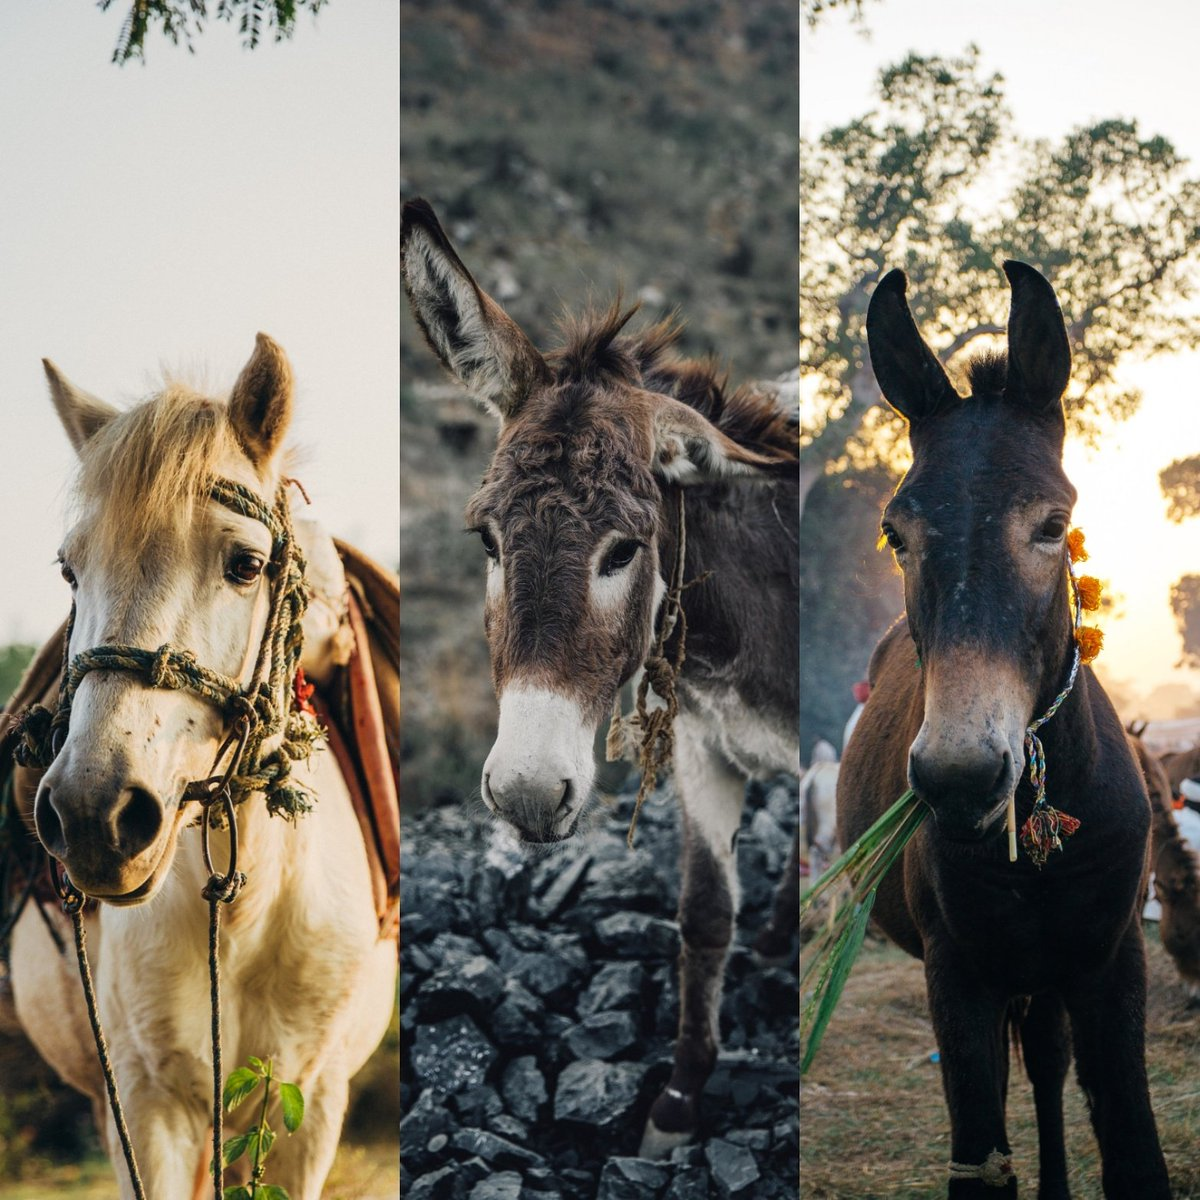 It's #WorldAnimalDay! Please RT to share the love for working horses, donkeys and mules worldwide